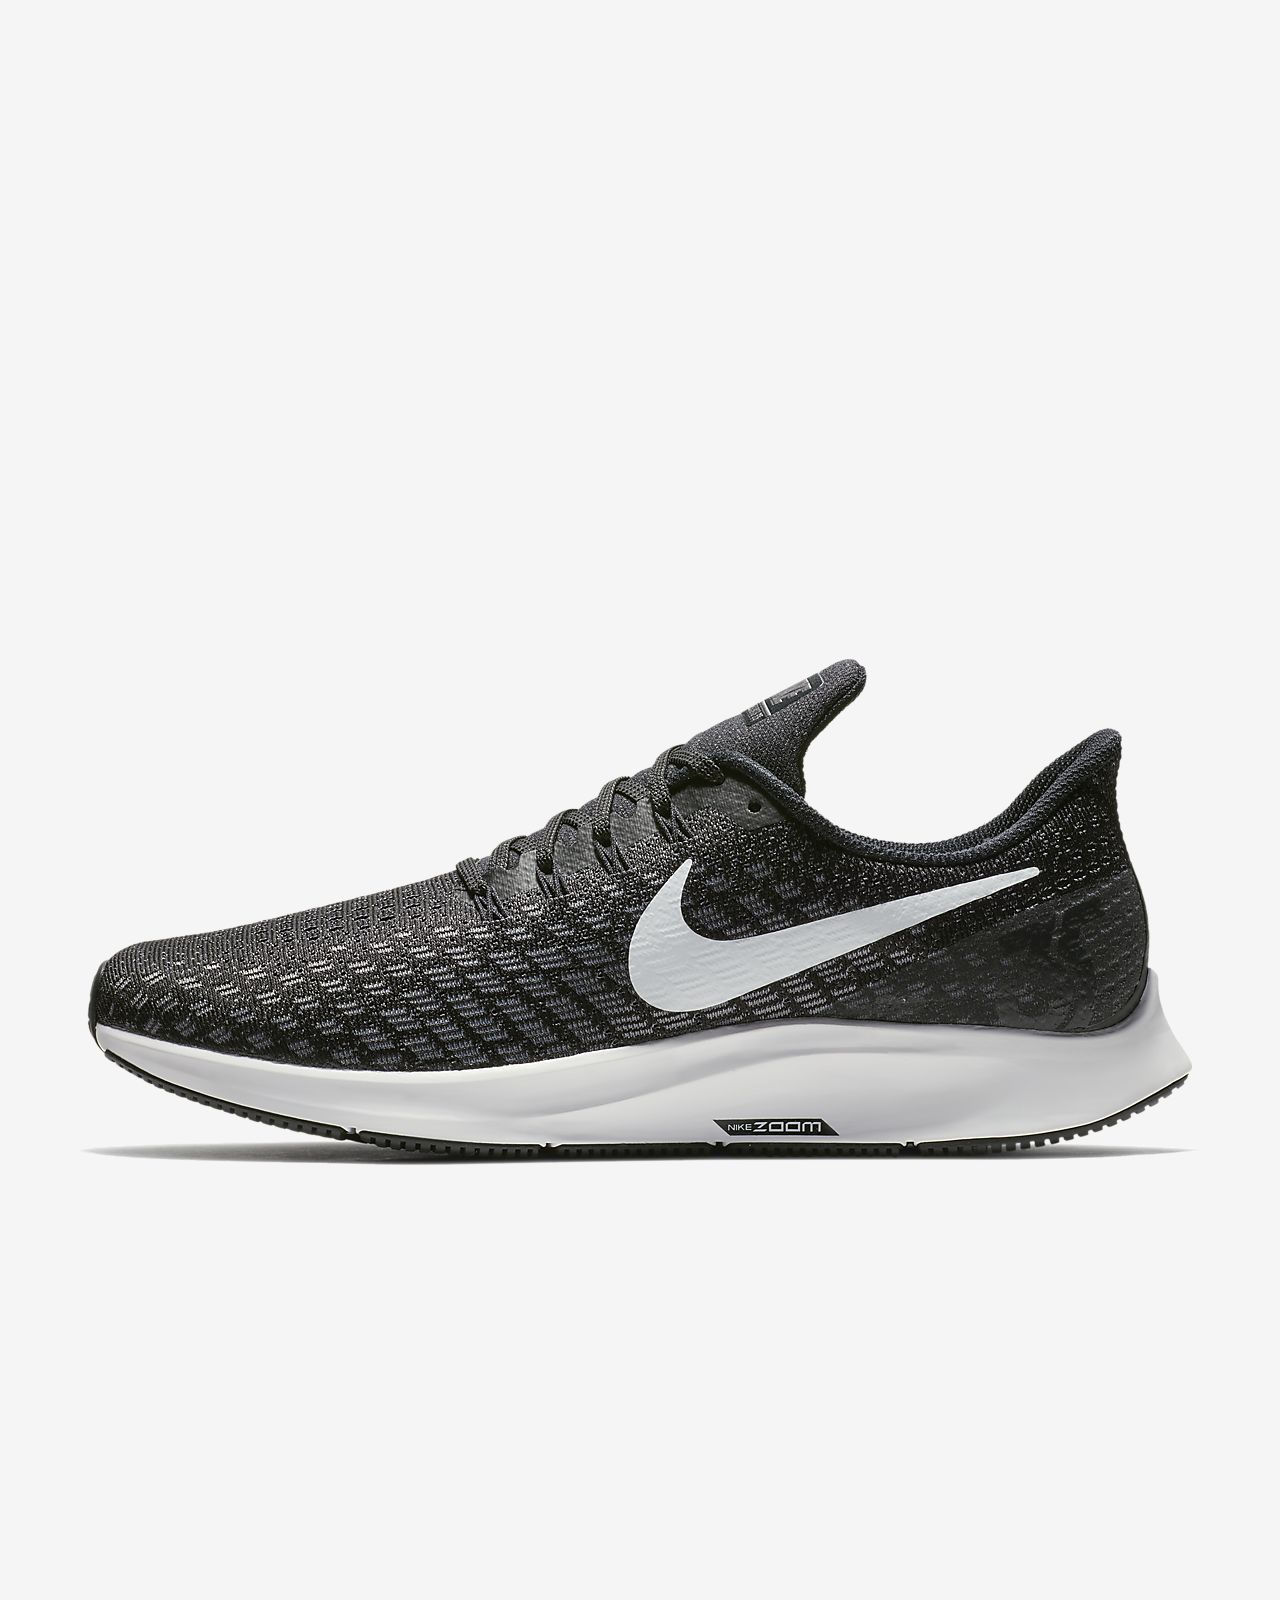 24846567ee433 Low Resolution Nike Air Zoom Pegasus 35 Men s Running Shoe Nike Air Zoom  Pegasus 35 Men s Running Shoe